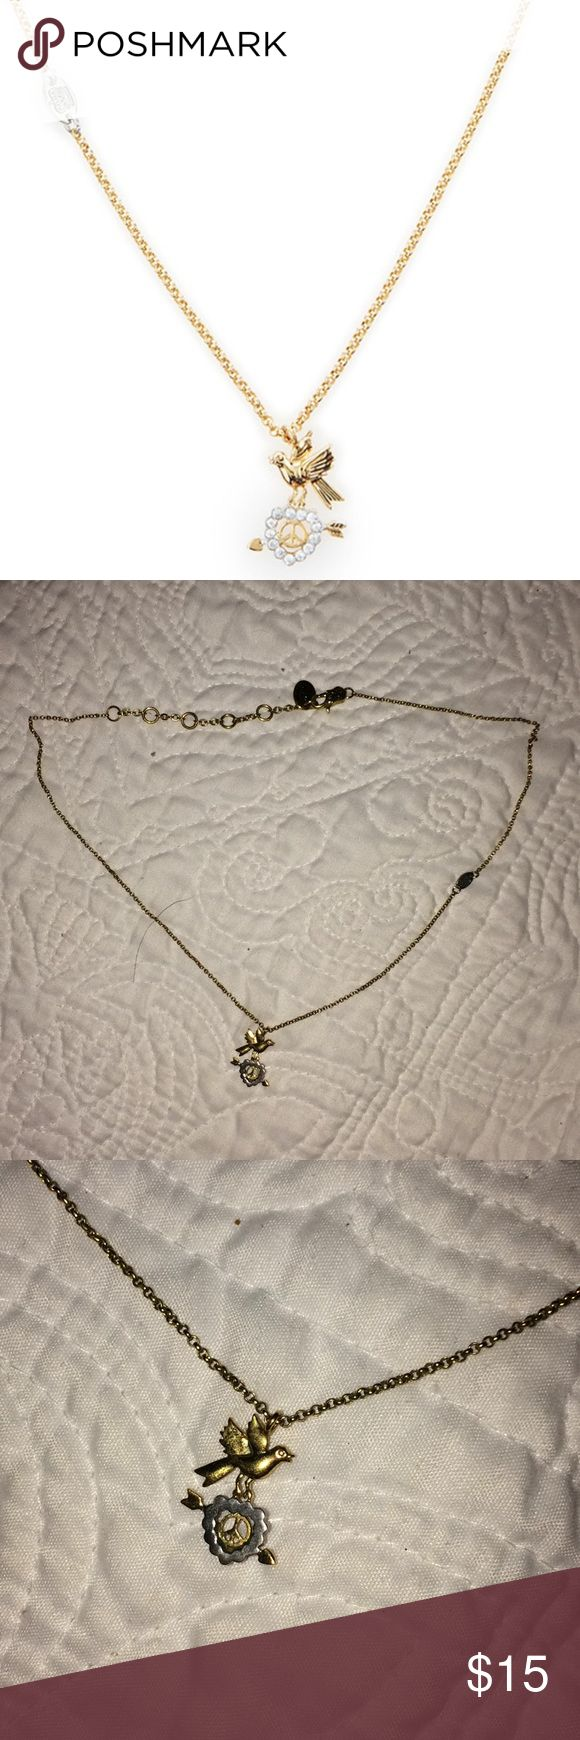 Juicy Couture peace bird necklace Adorable two toned necklace  Condition; EUC, no sign of wear. Clasp is in good functional condition Reasonable offers welcome! Juicy Couture Jewelry Necklaces